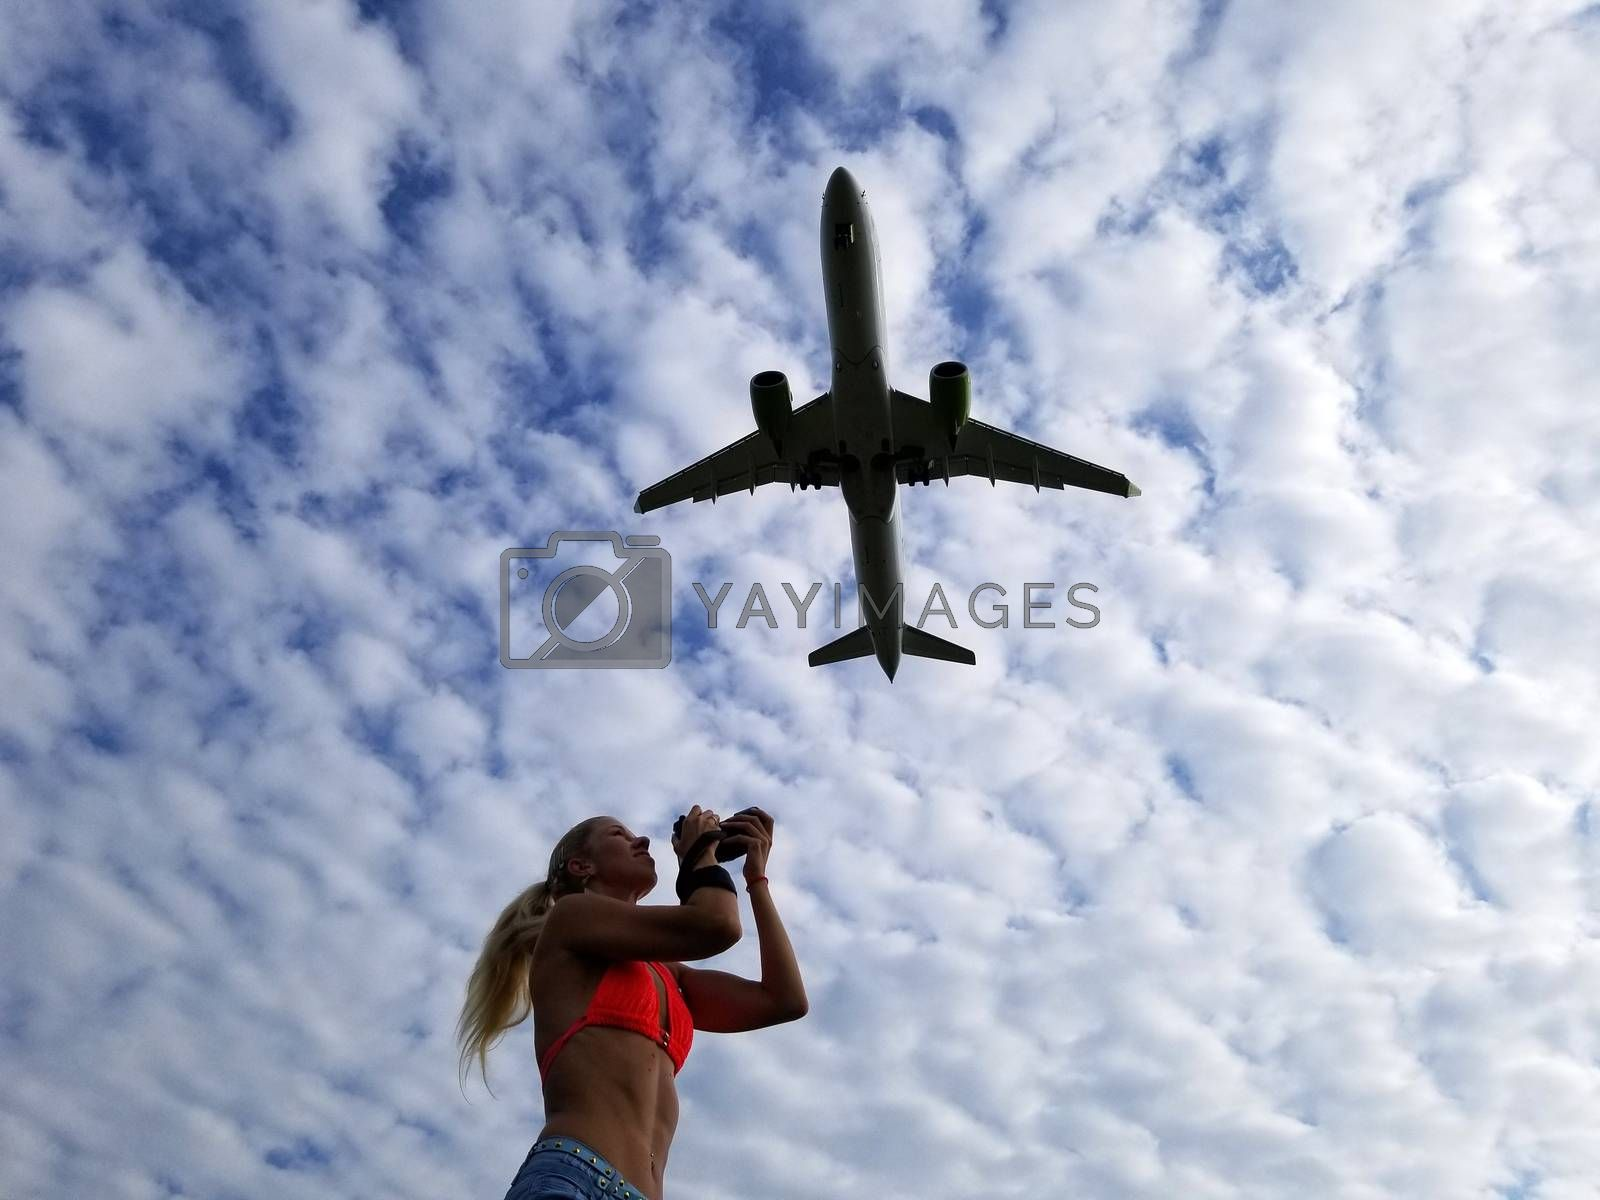 Blonde girl with long hair takes pictures of a plane flying over her on a cloudy sky background.